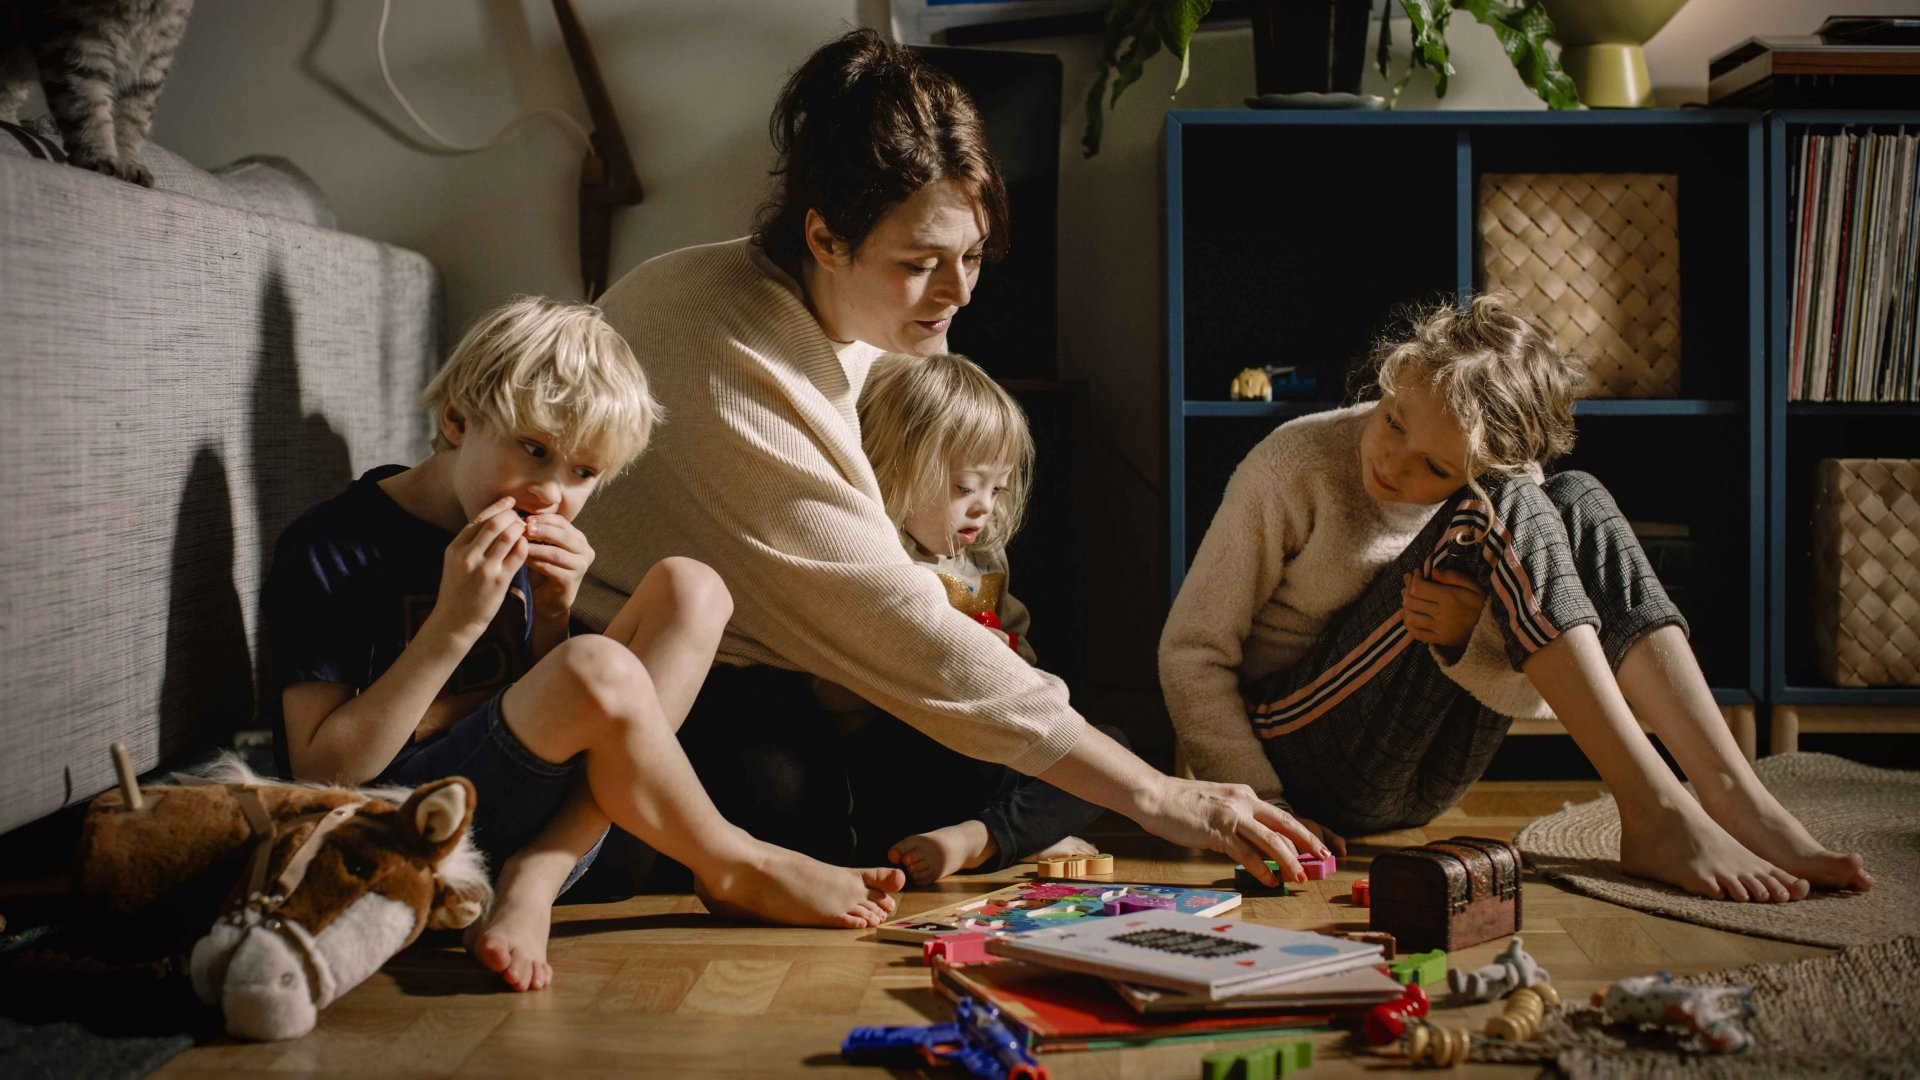 Want to Raise Emotionally Healthy Kids? Research Shows How You Spend Time Together Matters More Than the Number of Hours